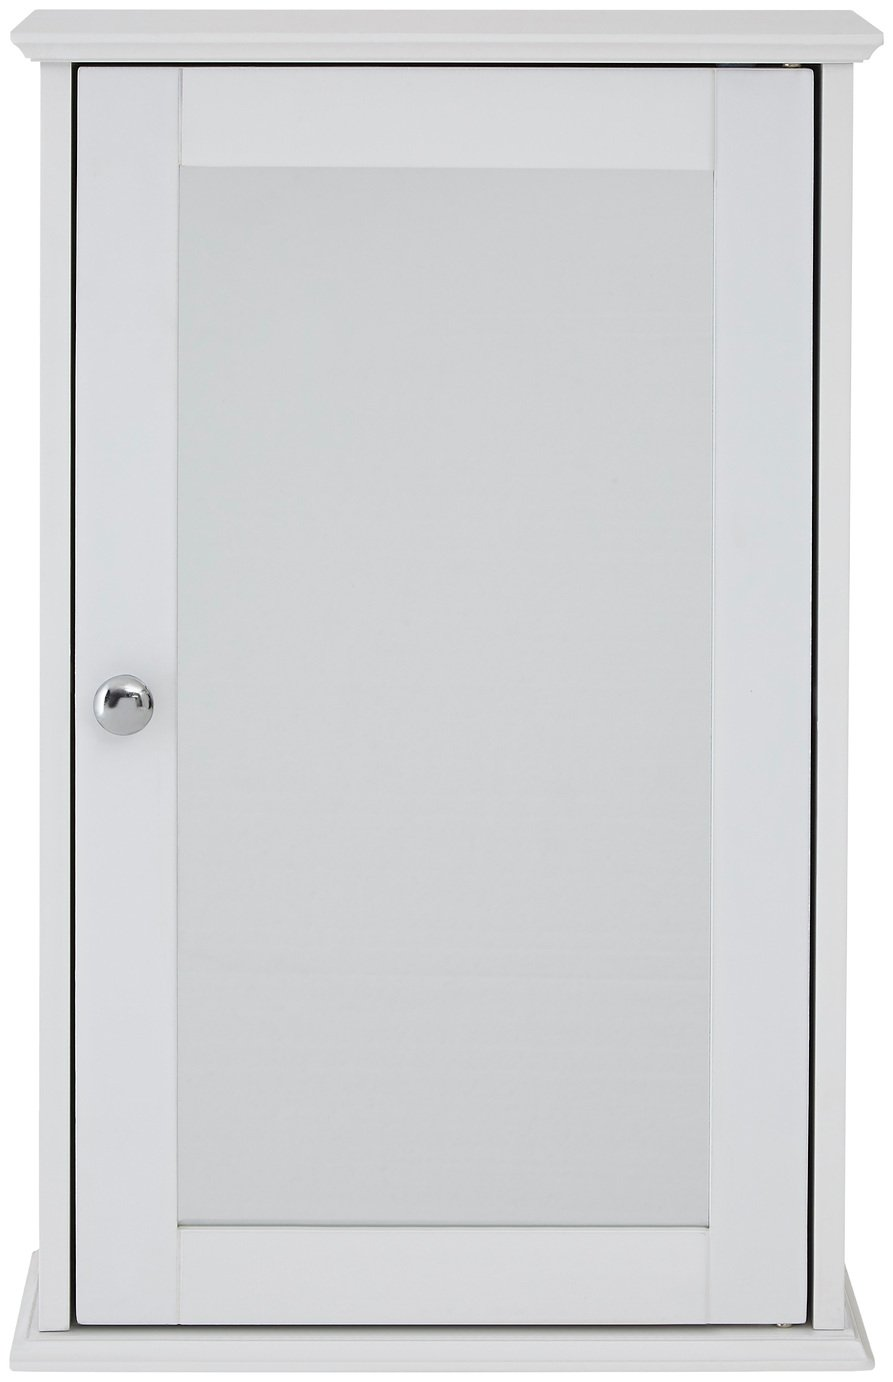 Premier Housewares Portland Wooden Mirrored Cabinet - White. at Argos from Premier housewares